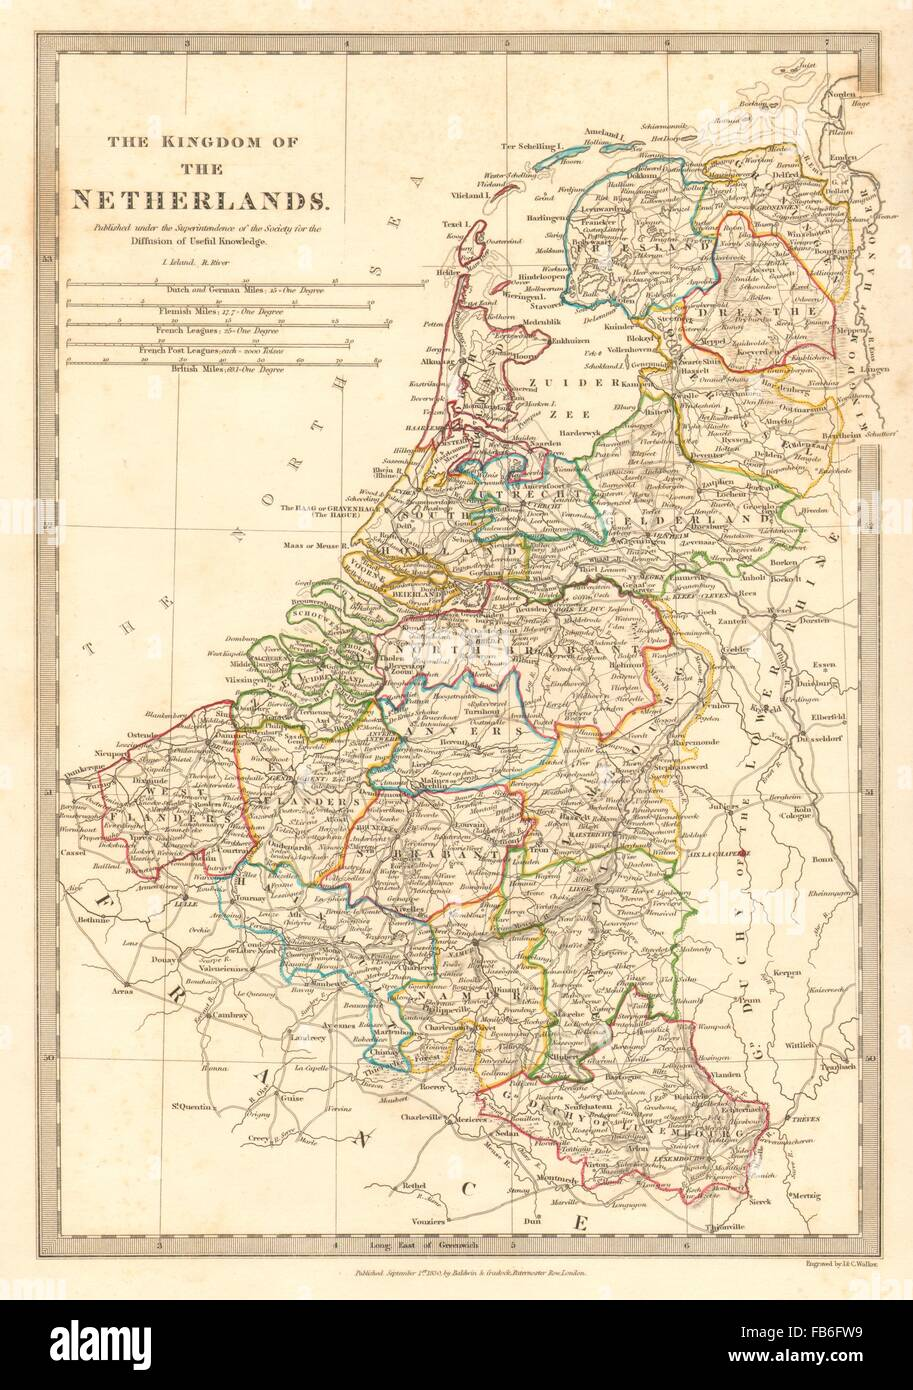 kingdom of the netherlands belgium provinces holland sduk 1848 old map